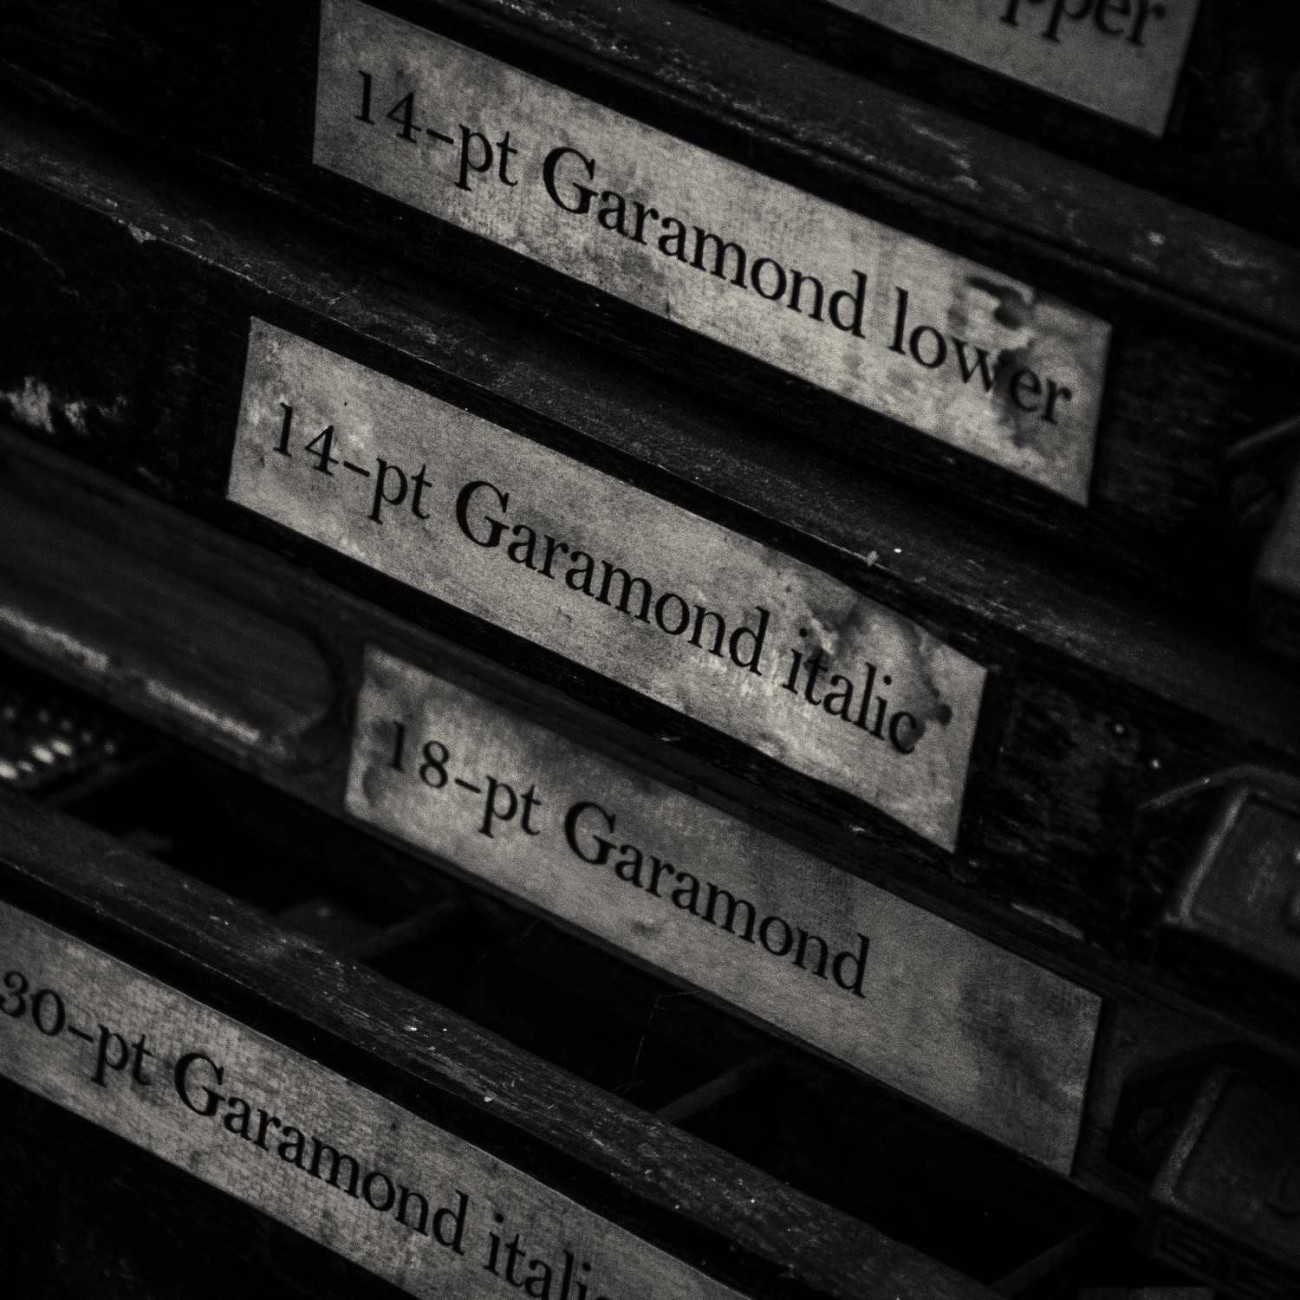 Garamond type trays, England, 2010